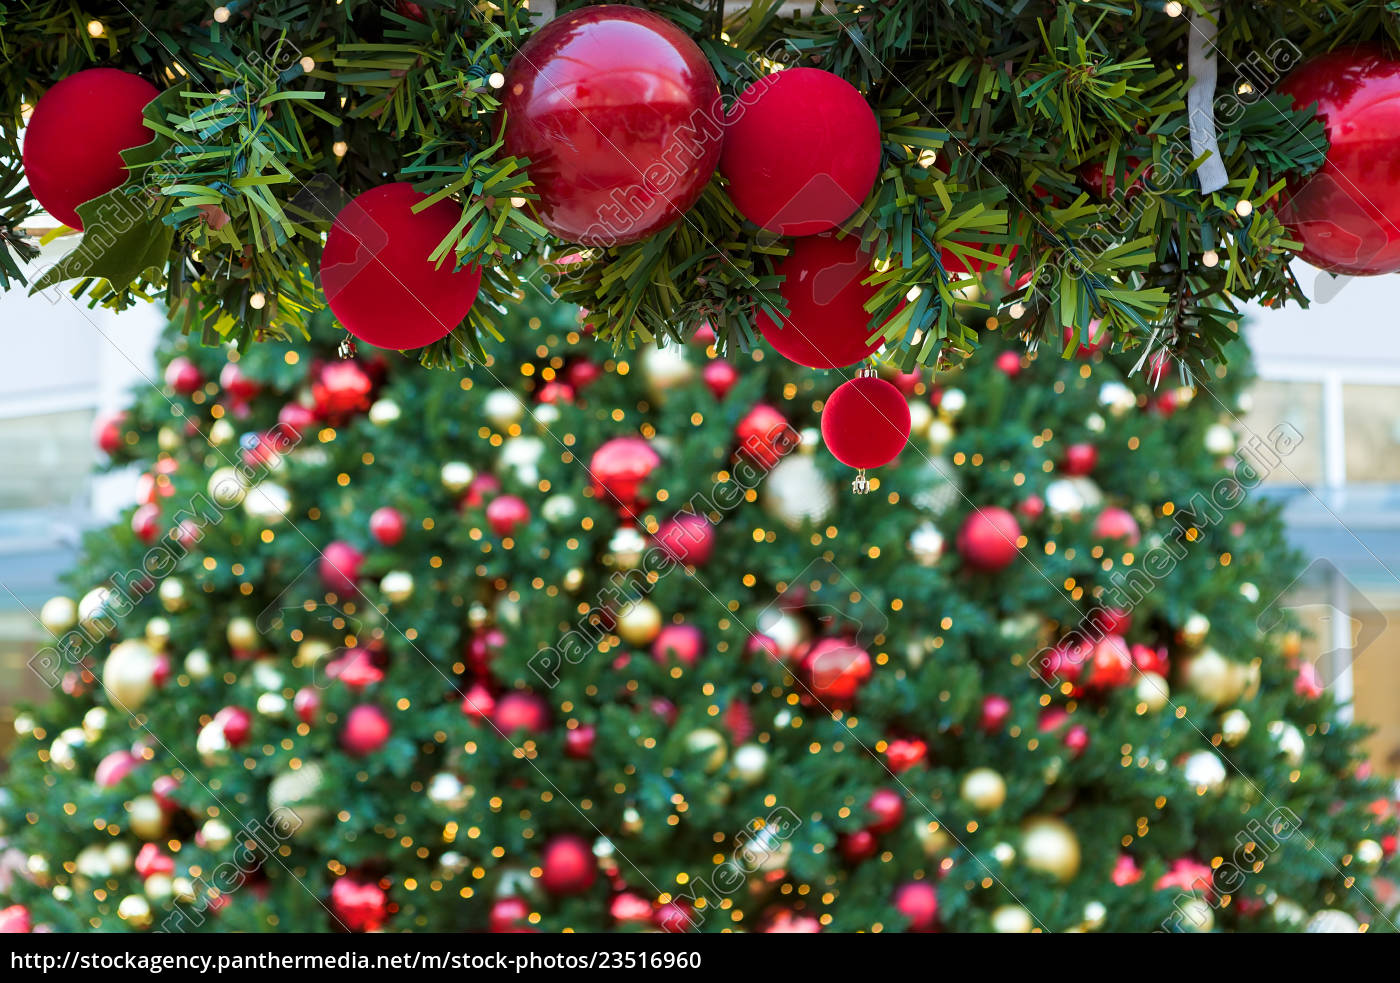 Christmas Tree Garland.Royalty Free Photo 23516960 Christmas Holiday Red Ornaments On Garland